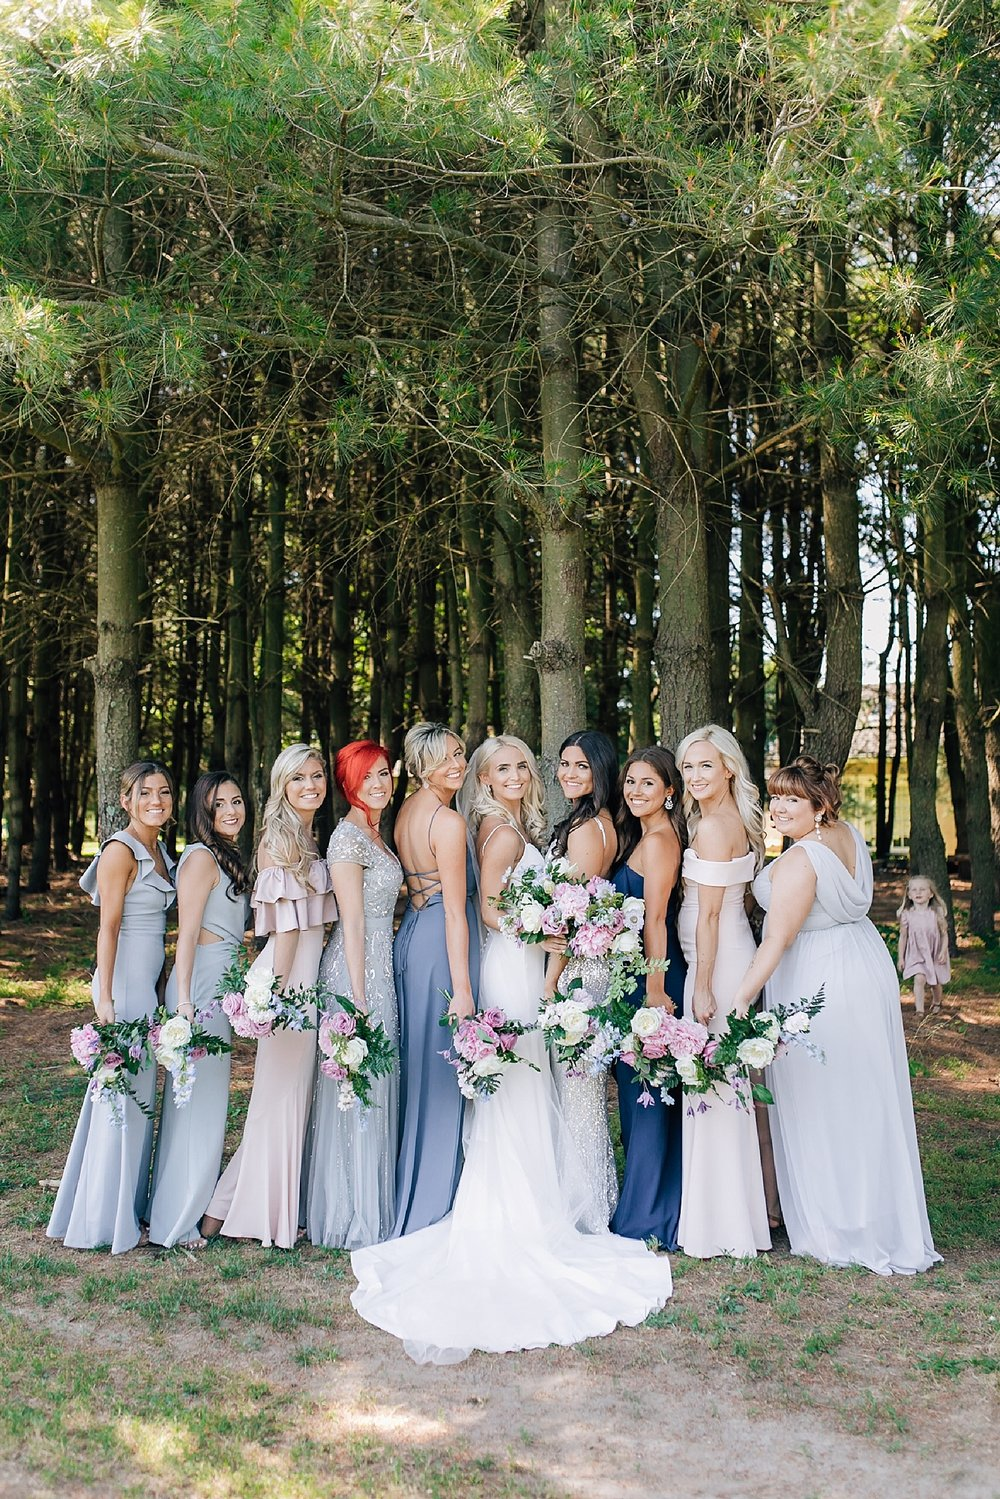 A Unique Outdoor Summer Wedding at Bast Brothers Garden Center by Magdalena Studios_0015.jpg